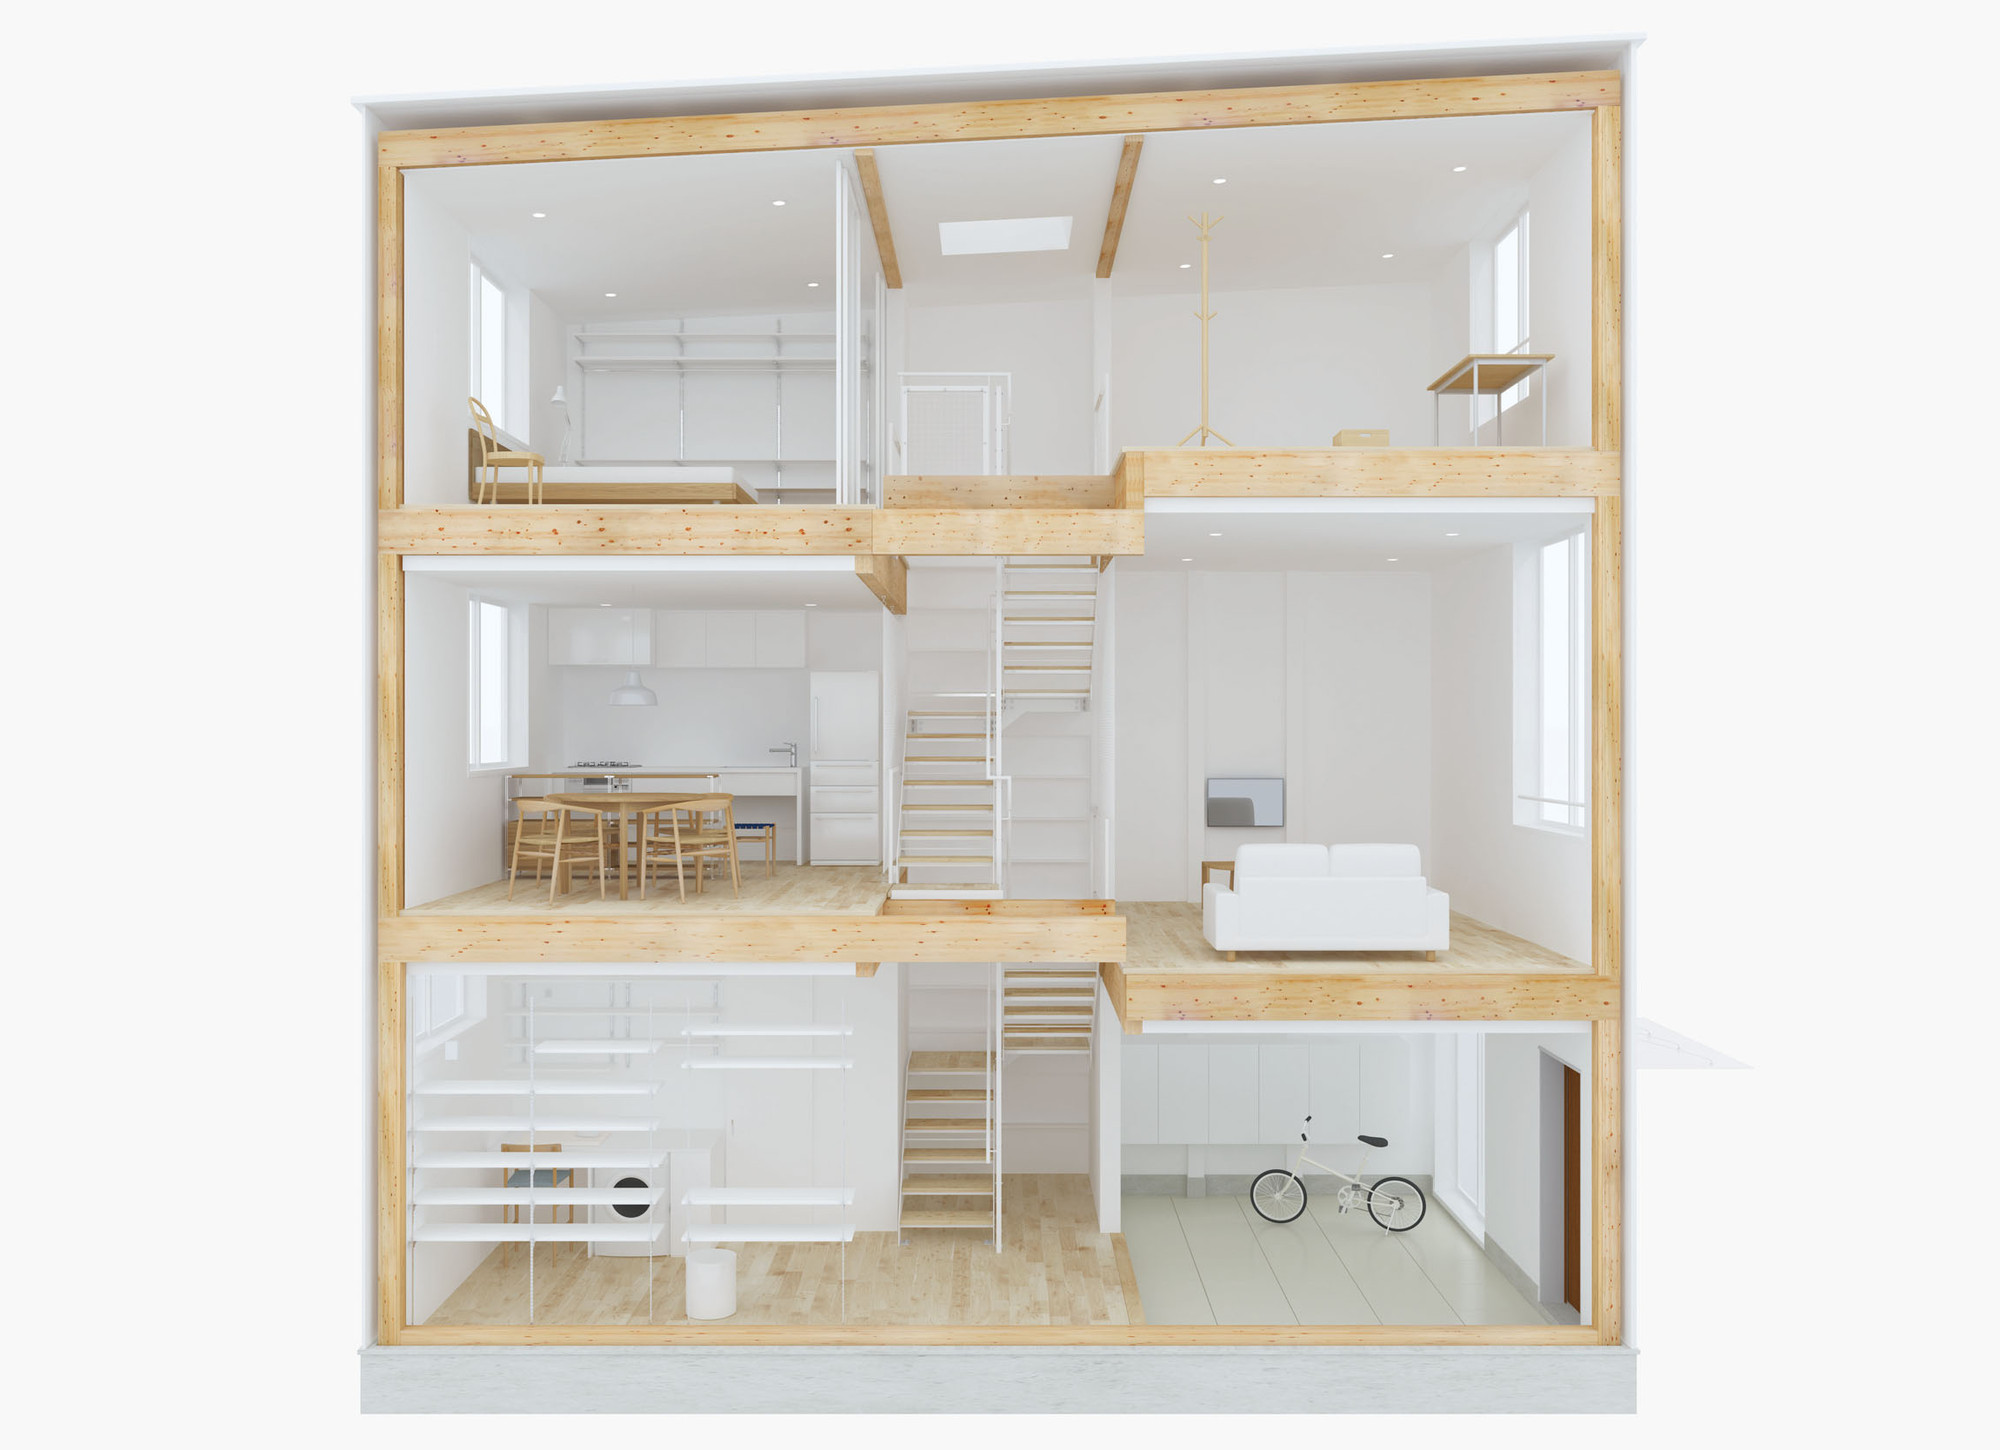 Design Your Own Home With Muji 39 S Prefab Vertical House